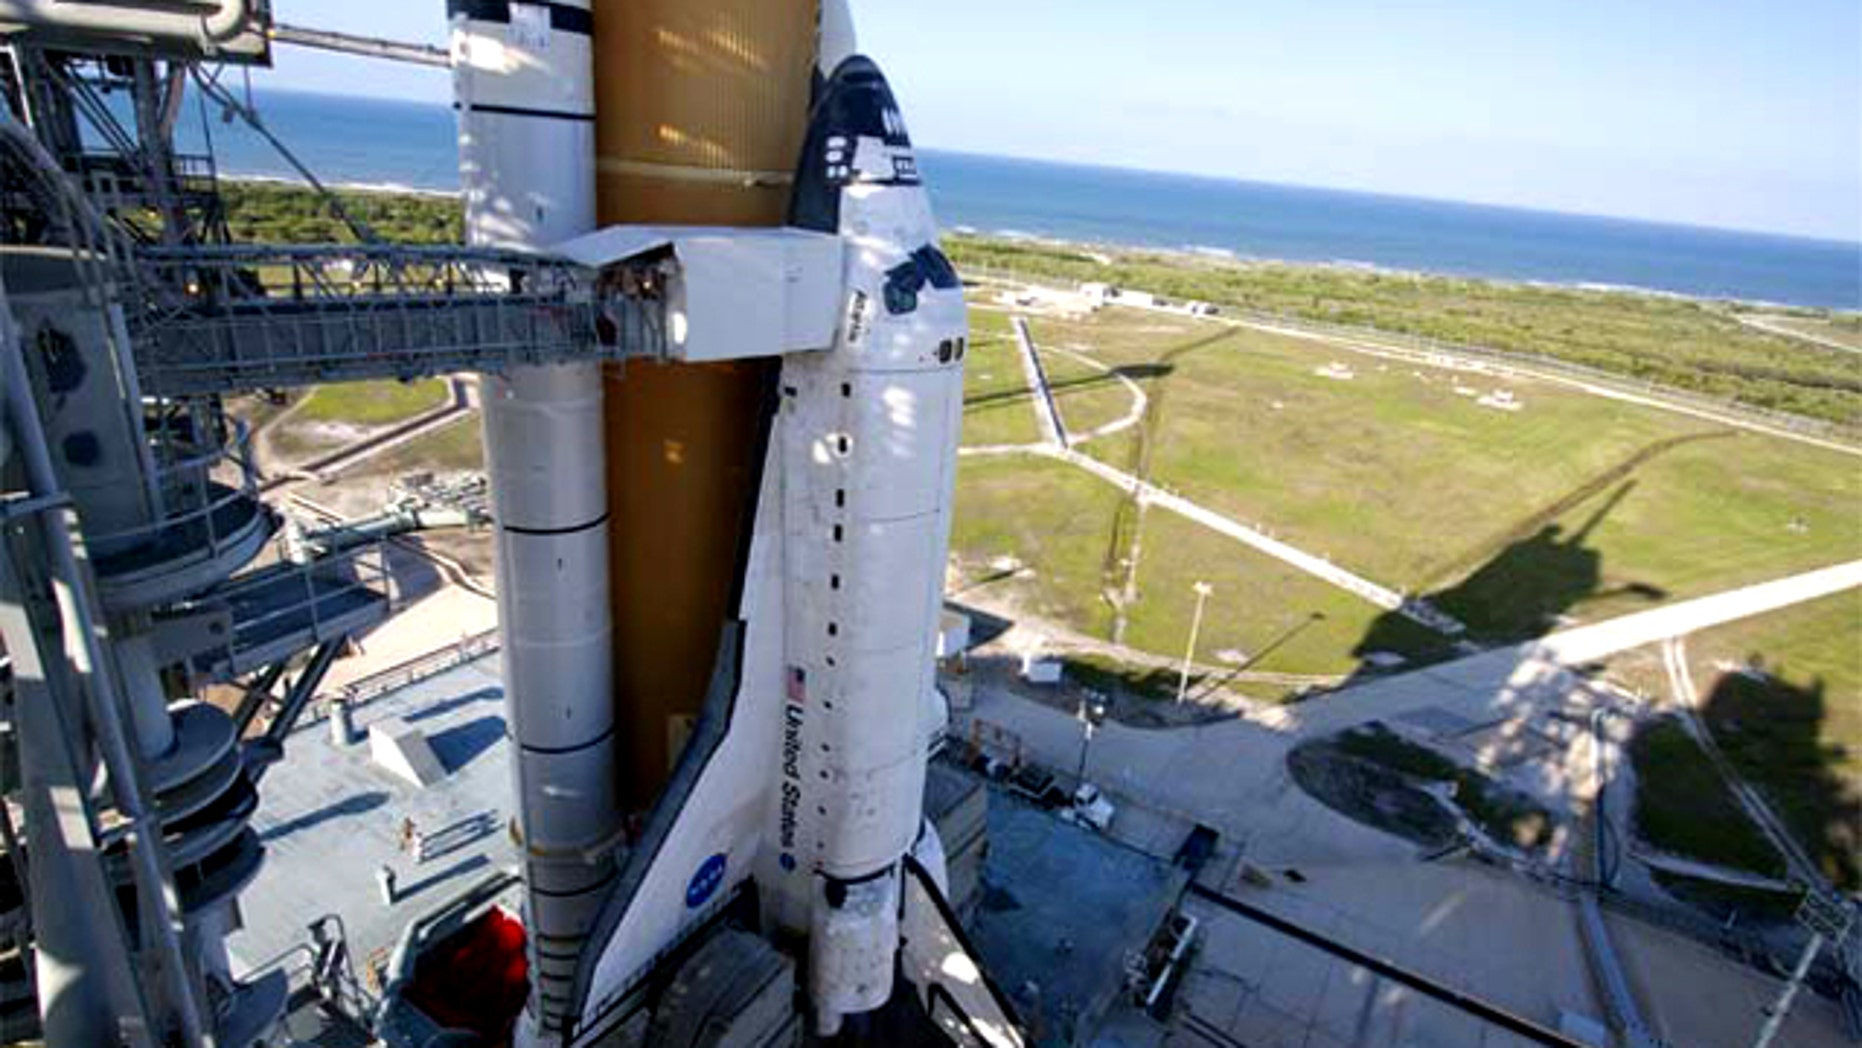 At NASA Kennedy Space Center's Launch Pad 39A, space shuttle Atlantis is revealed Thursday evening after retraction of the pad's rotating service structure. The shuttle is scheduled to lift off Friday at 2:20 p.m. EDT.